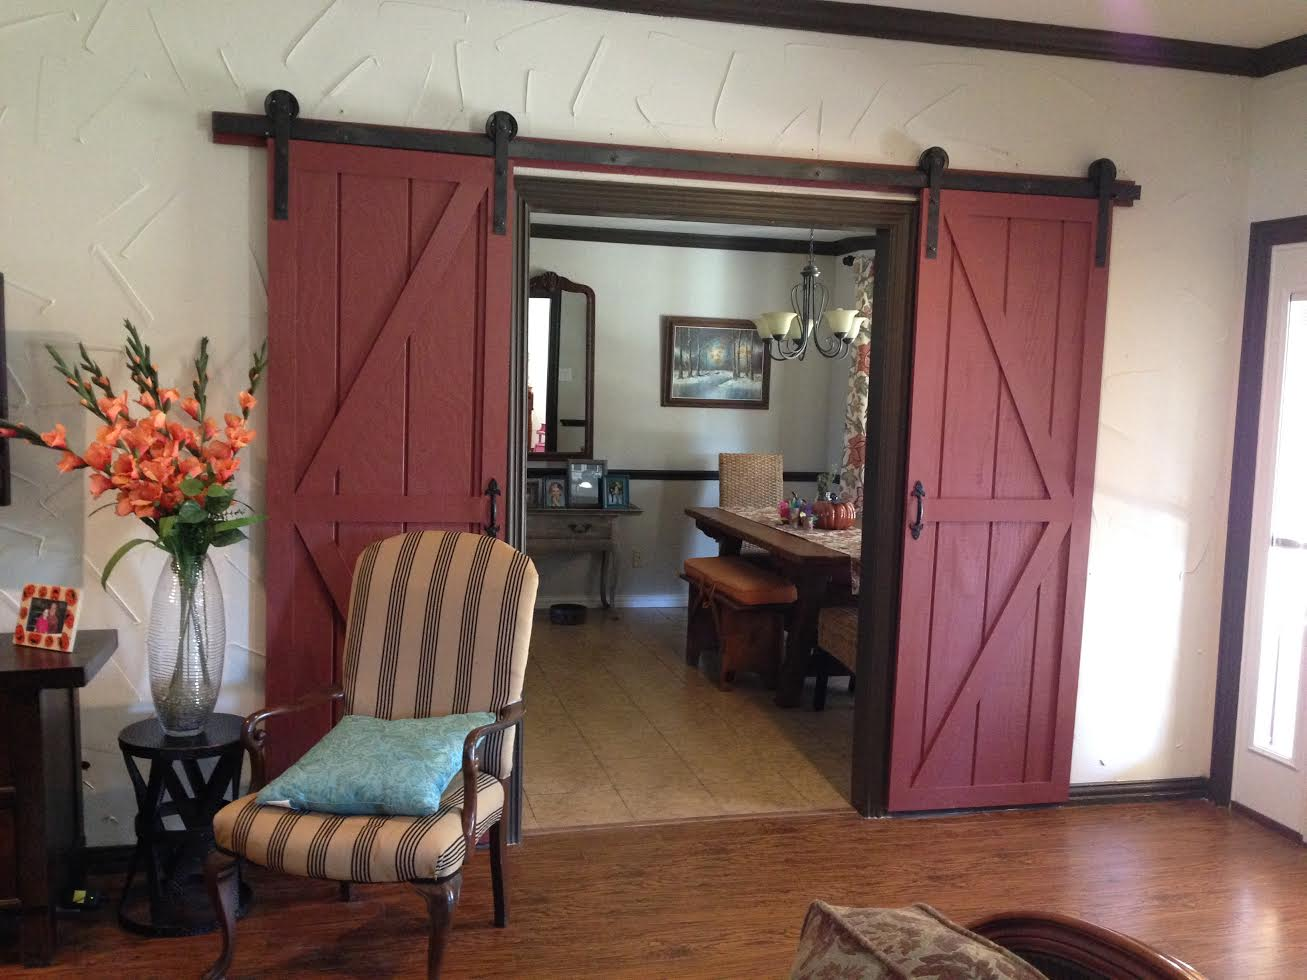 Bypass Barn Door Hardware Remodelaholic 35 Diy Barn Doors Rolling Door Hardware Ideas